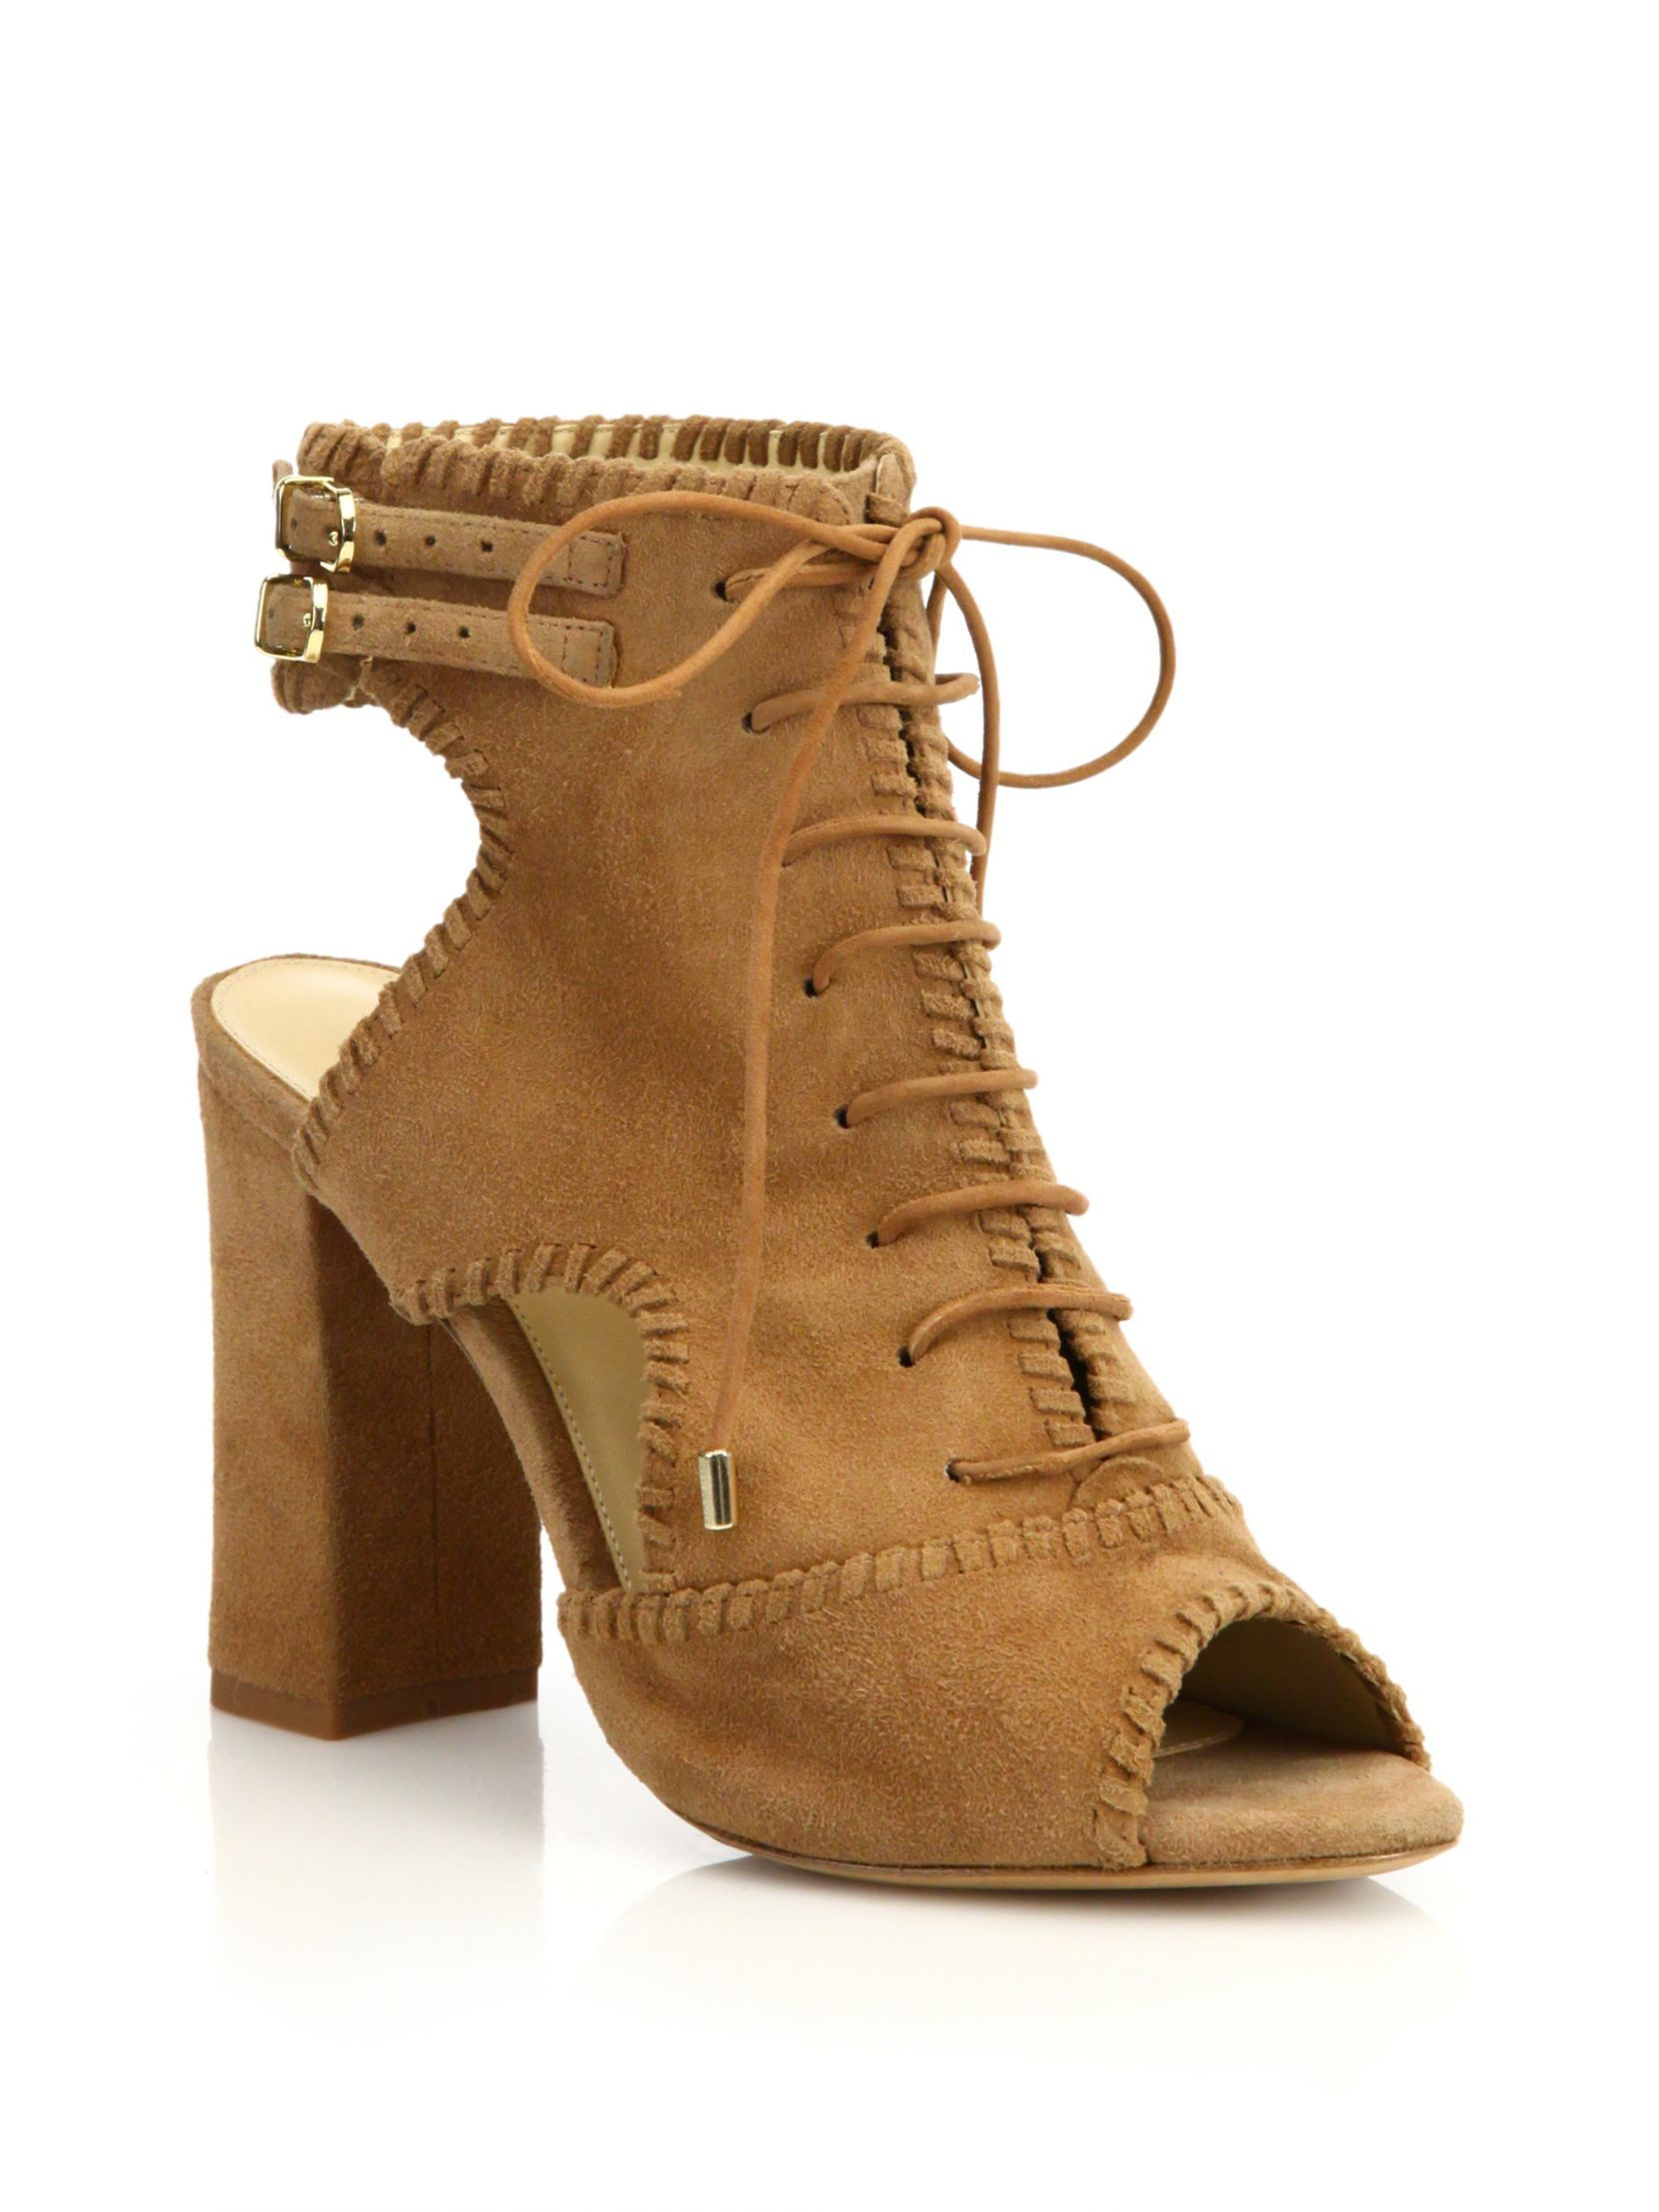 genuine online free shipping cheap real Alexandre Birman Suede Peep-Toe Booties supply cheap price qQcOVCB